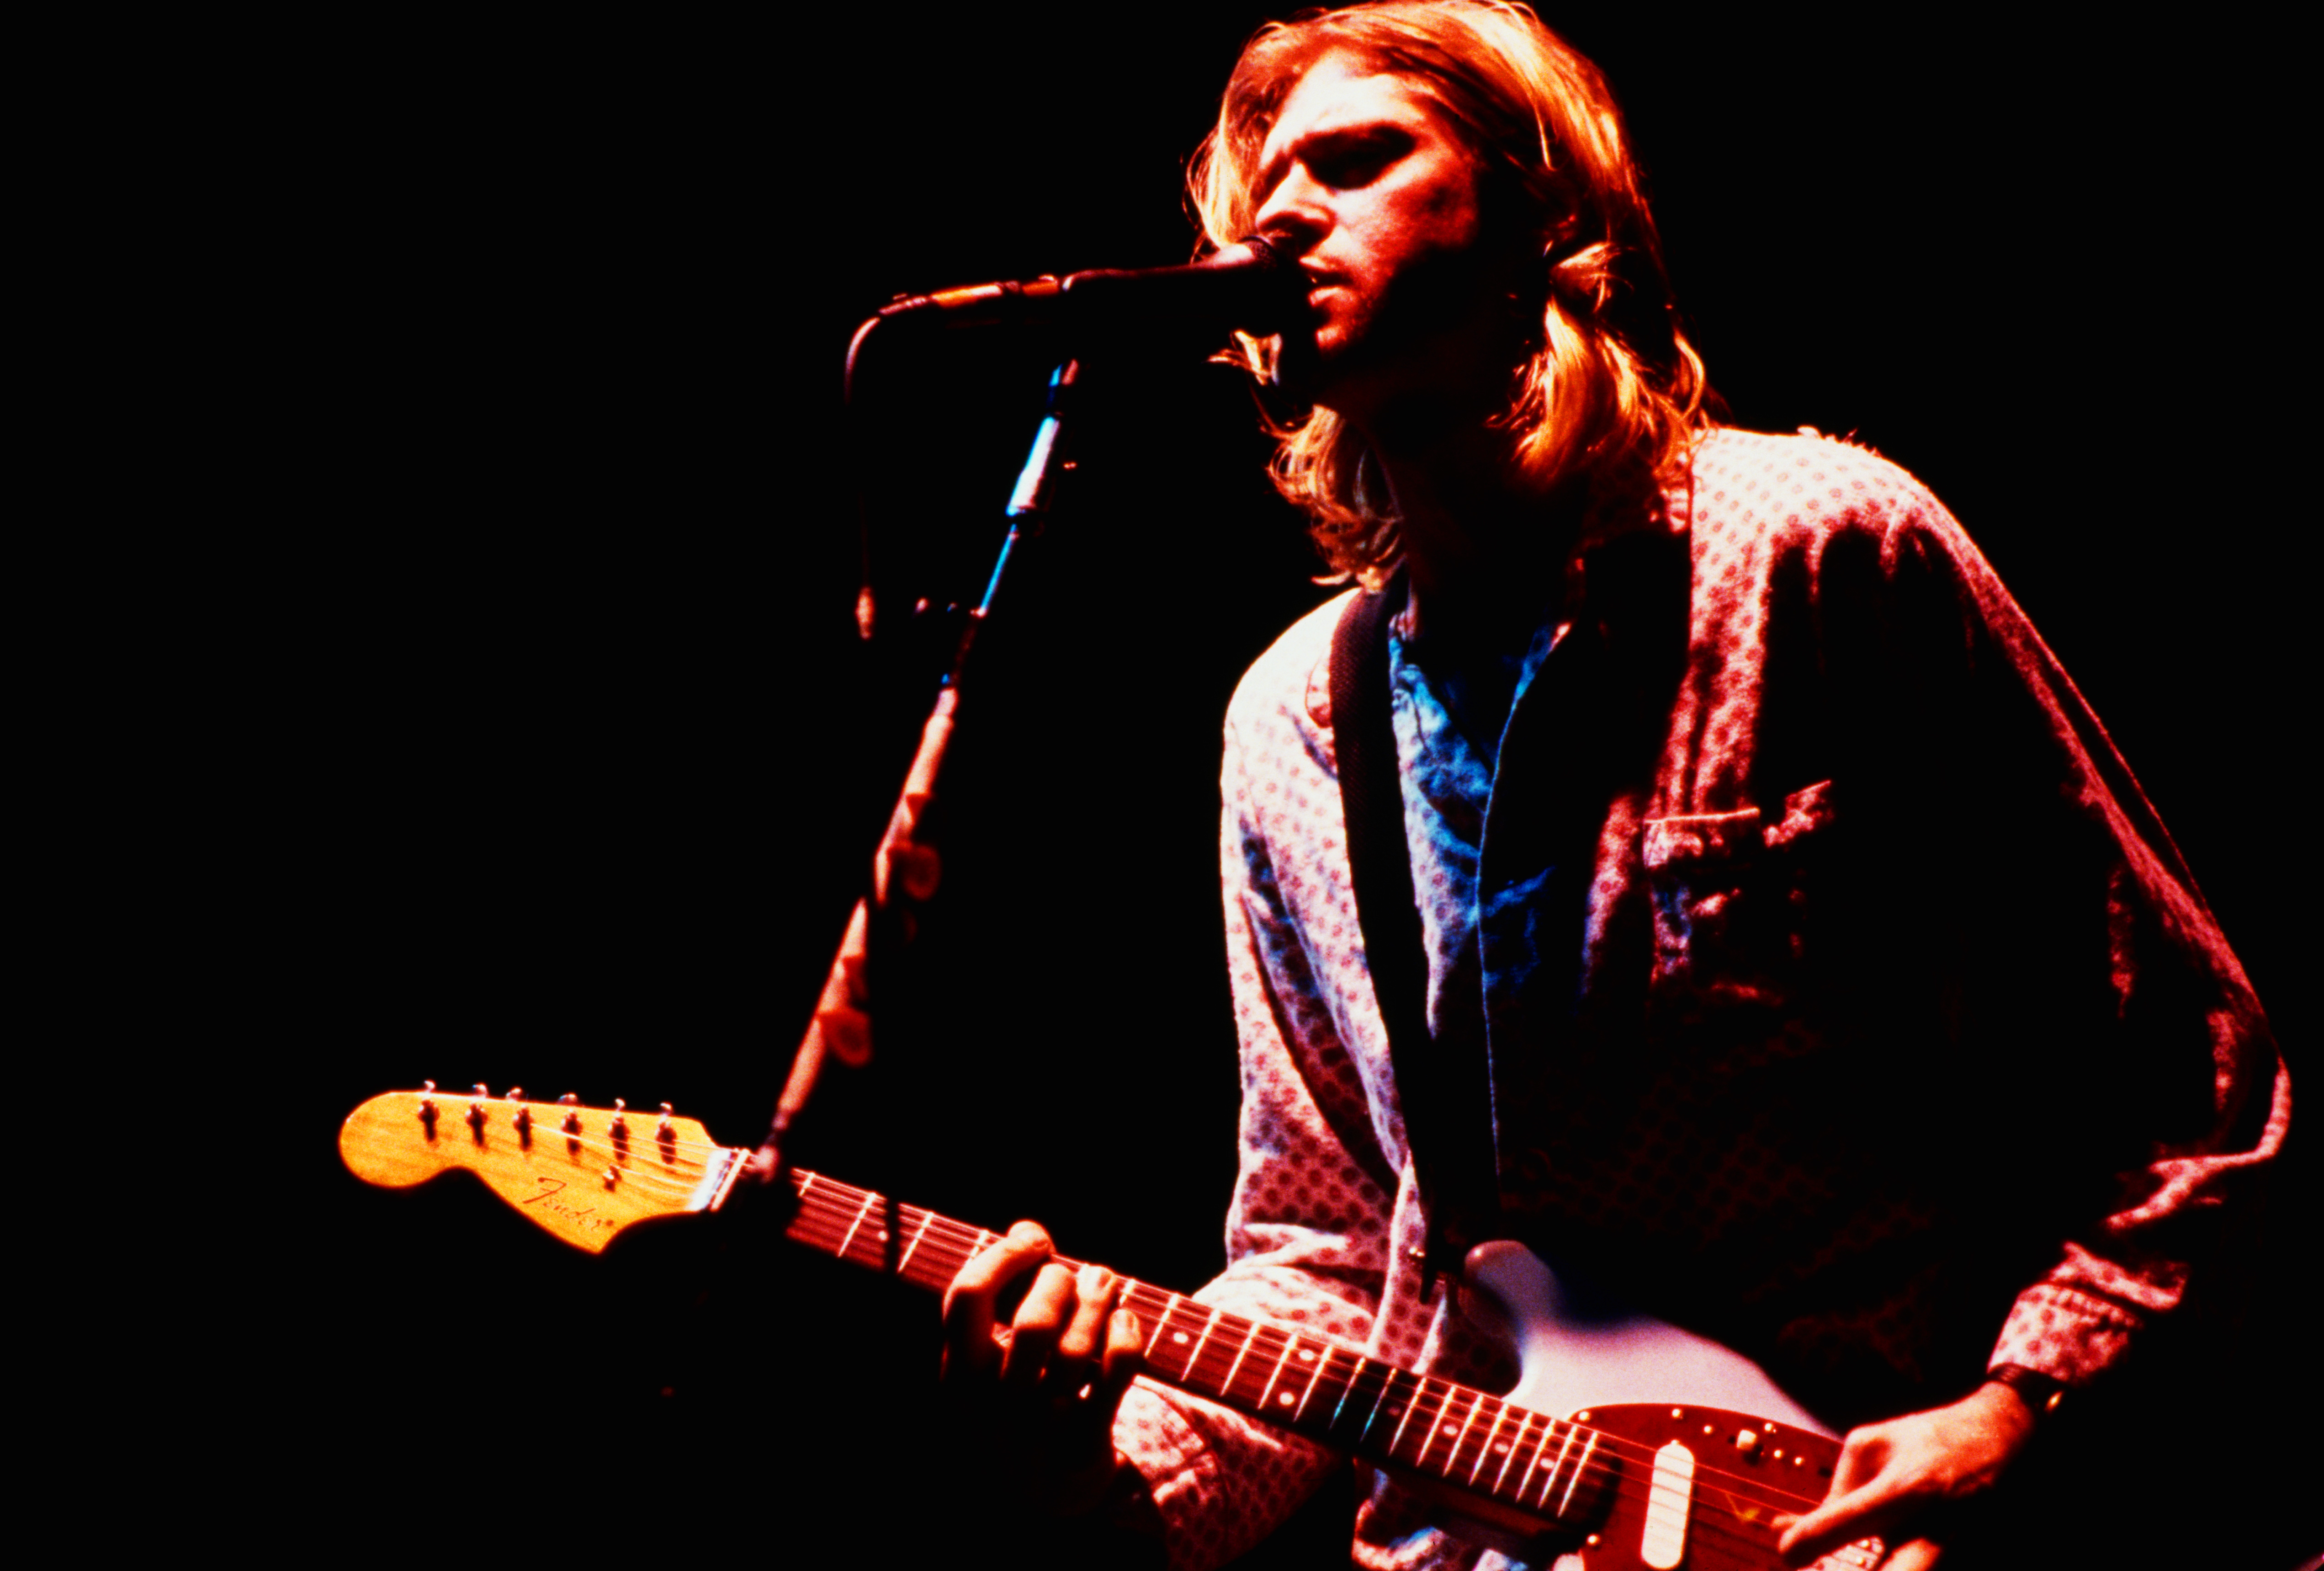 Singer-songwriter and guitarist Kurt Cobain (1967 - 1994) performing with American grunge band Nirvana at the Roseland Ballro